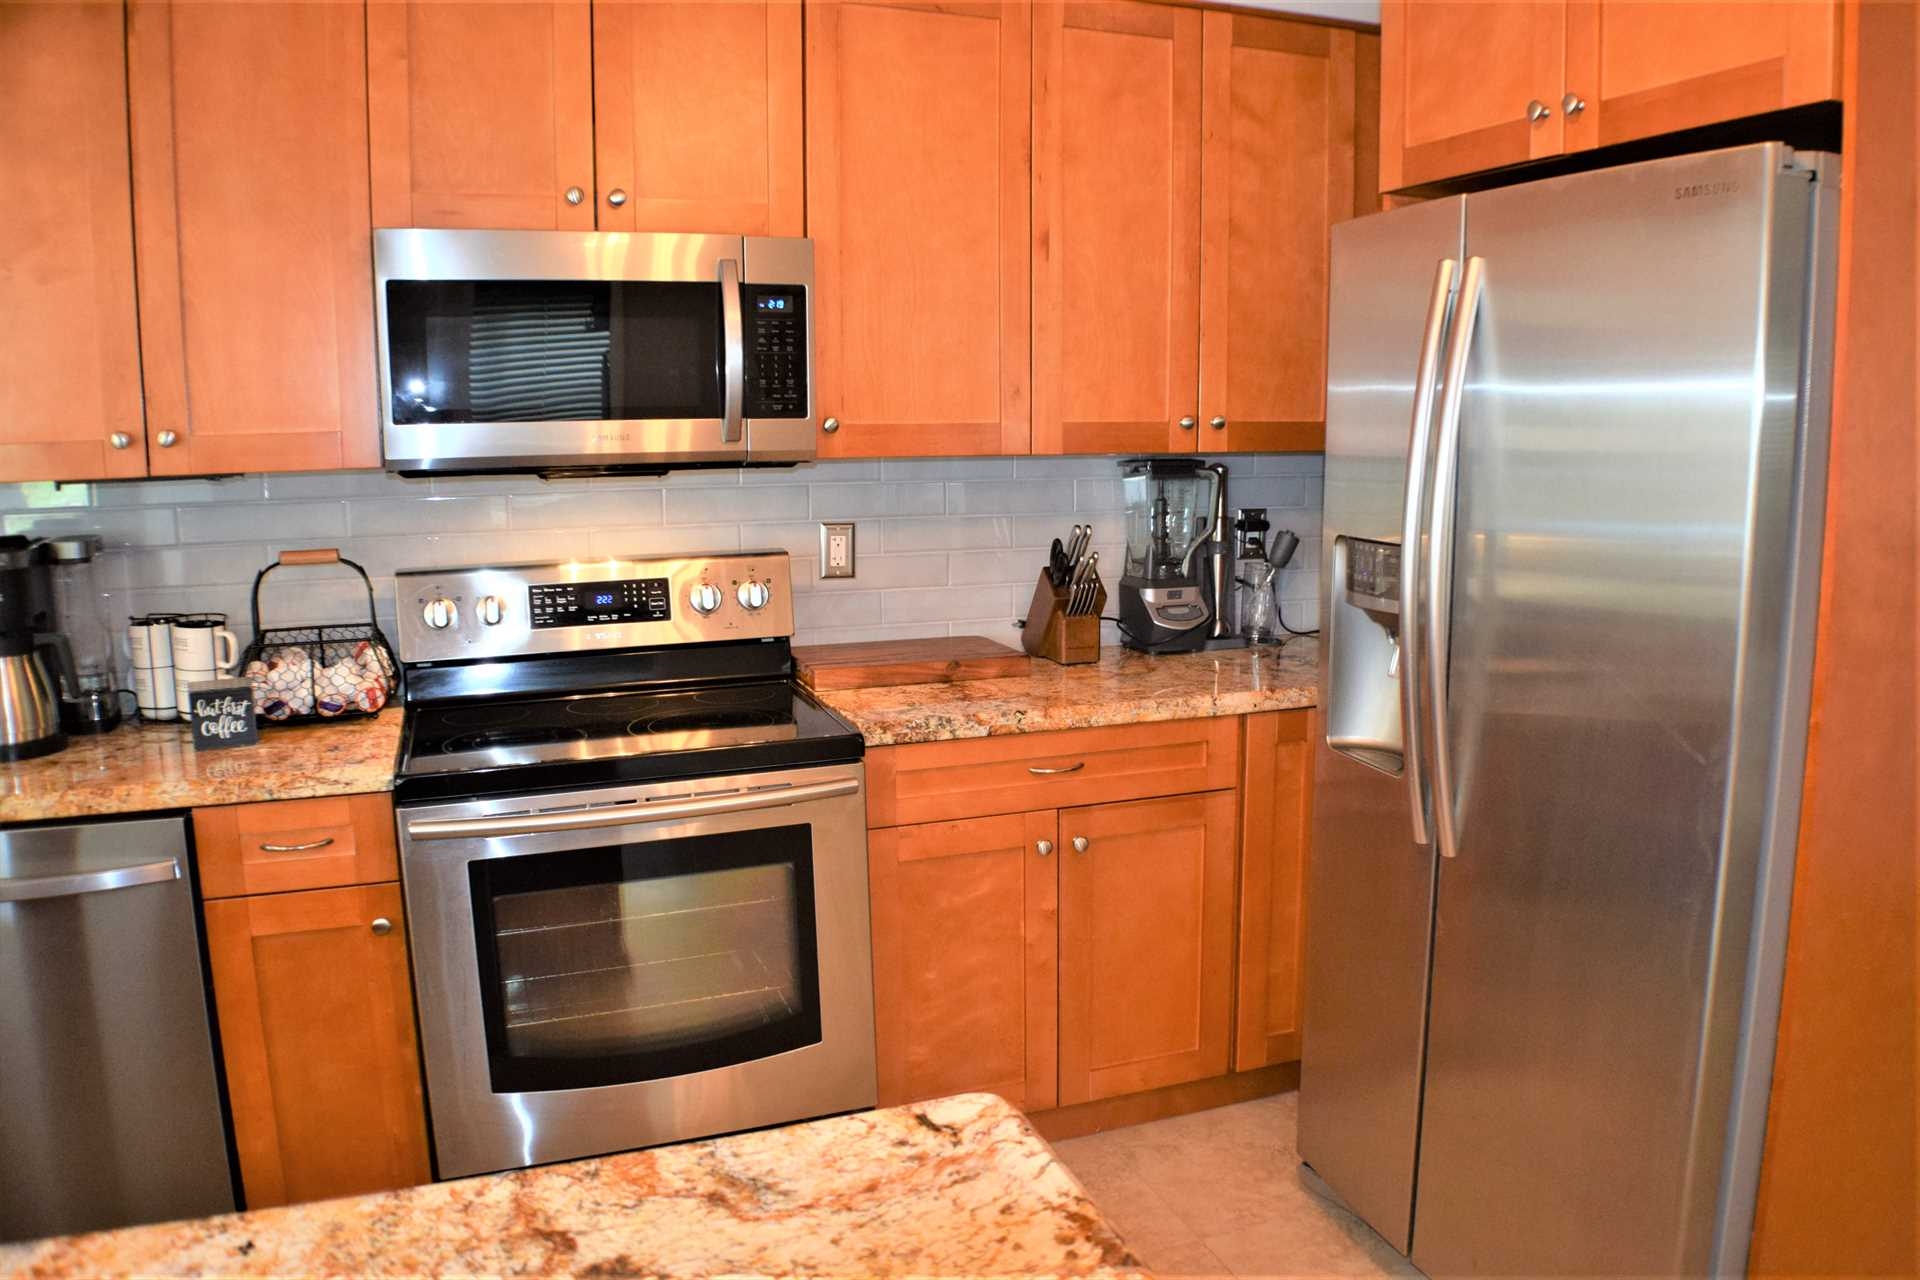 The kitchen features all stainless appliances